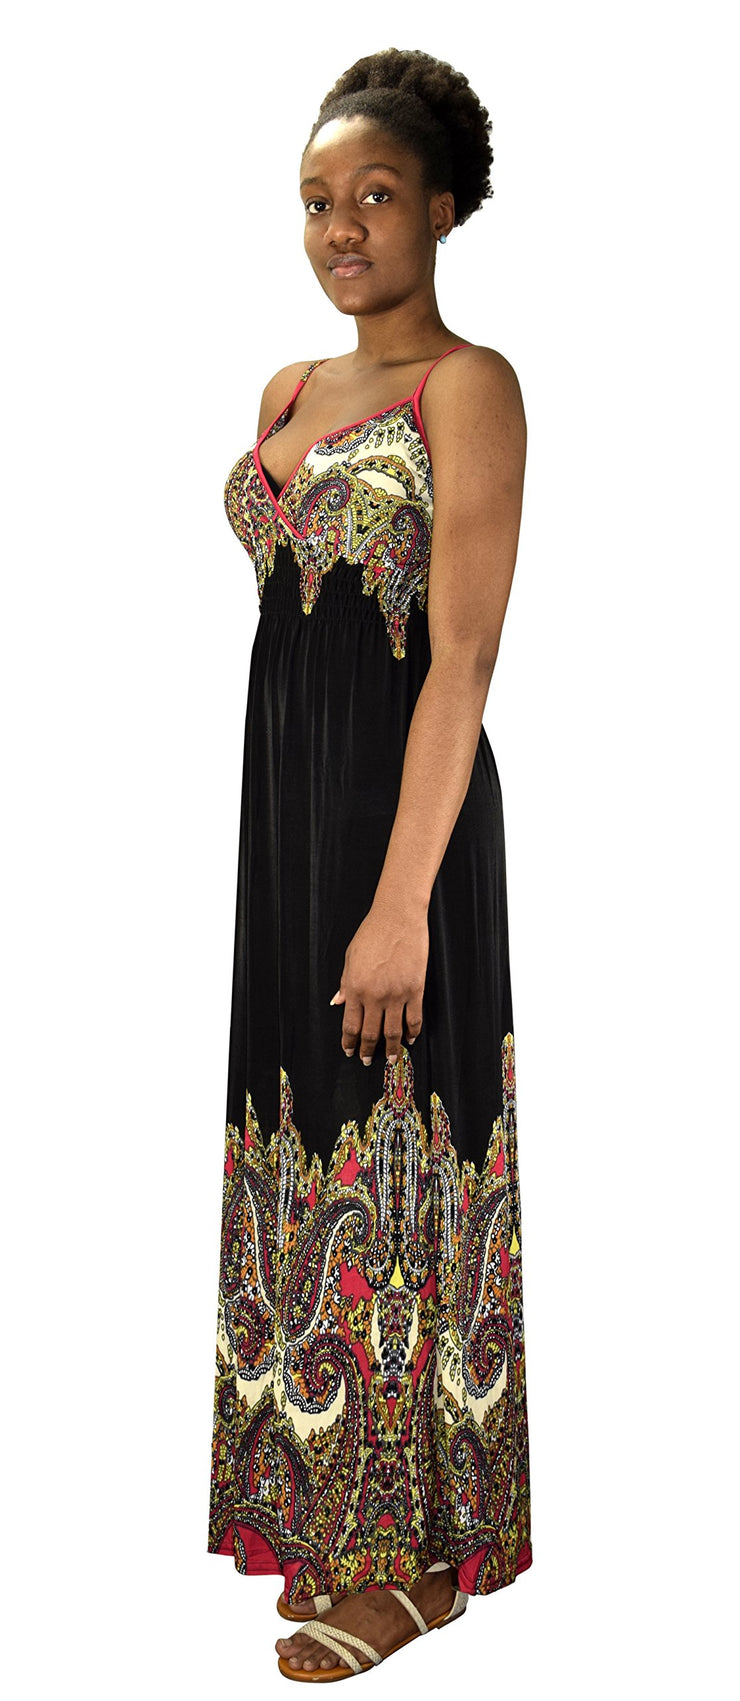 Peach Couture Spaghetti Strap Sleeveless Paisley Cocktail Vintage Maxi Dress